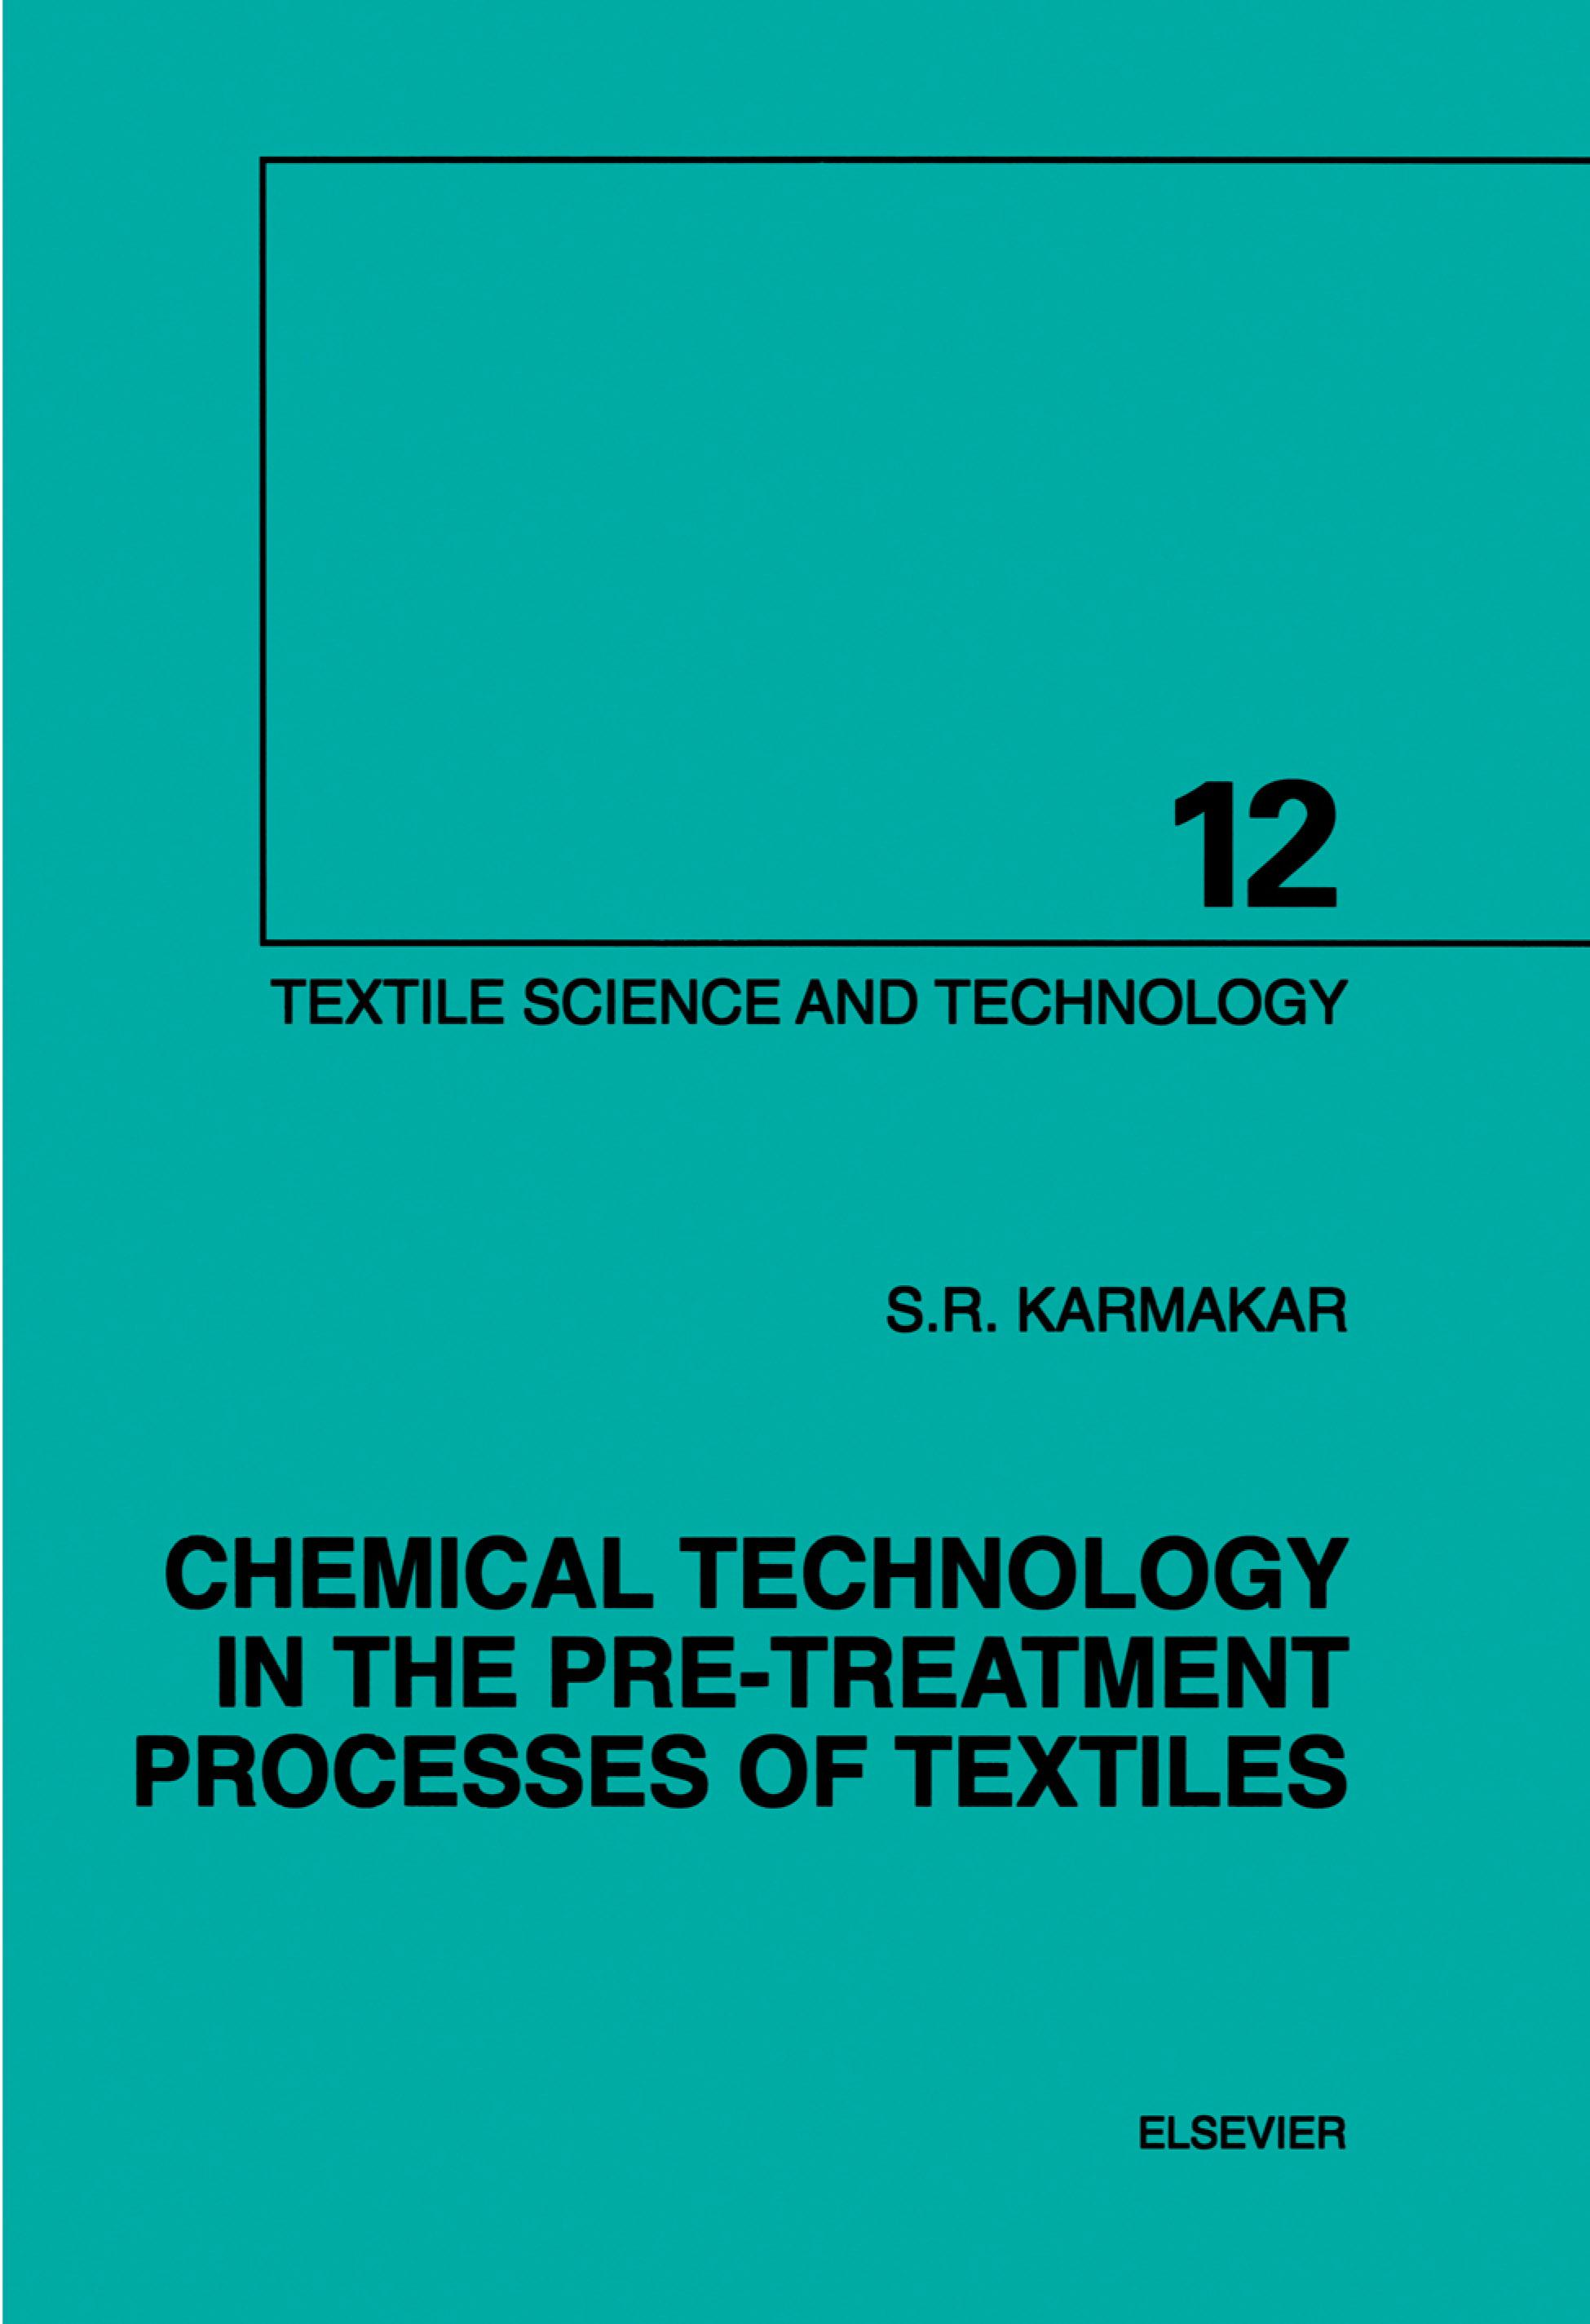 Chemical Technology in the Pre-Treatment Processes of Textiles EB9780080539478